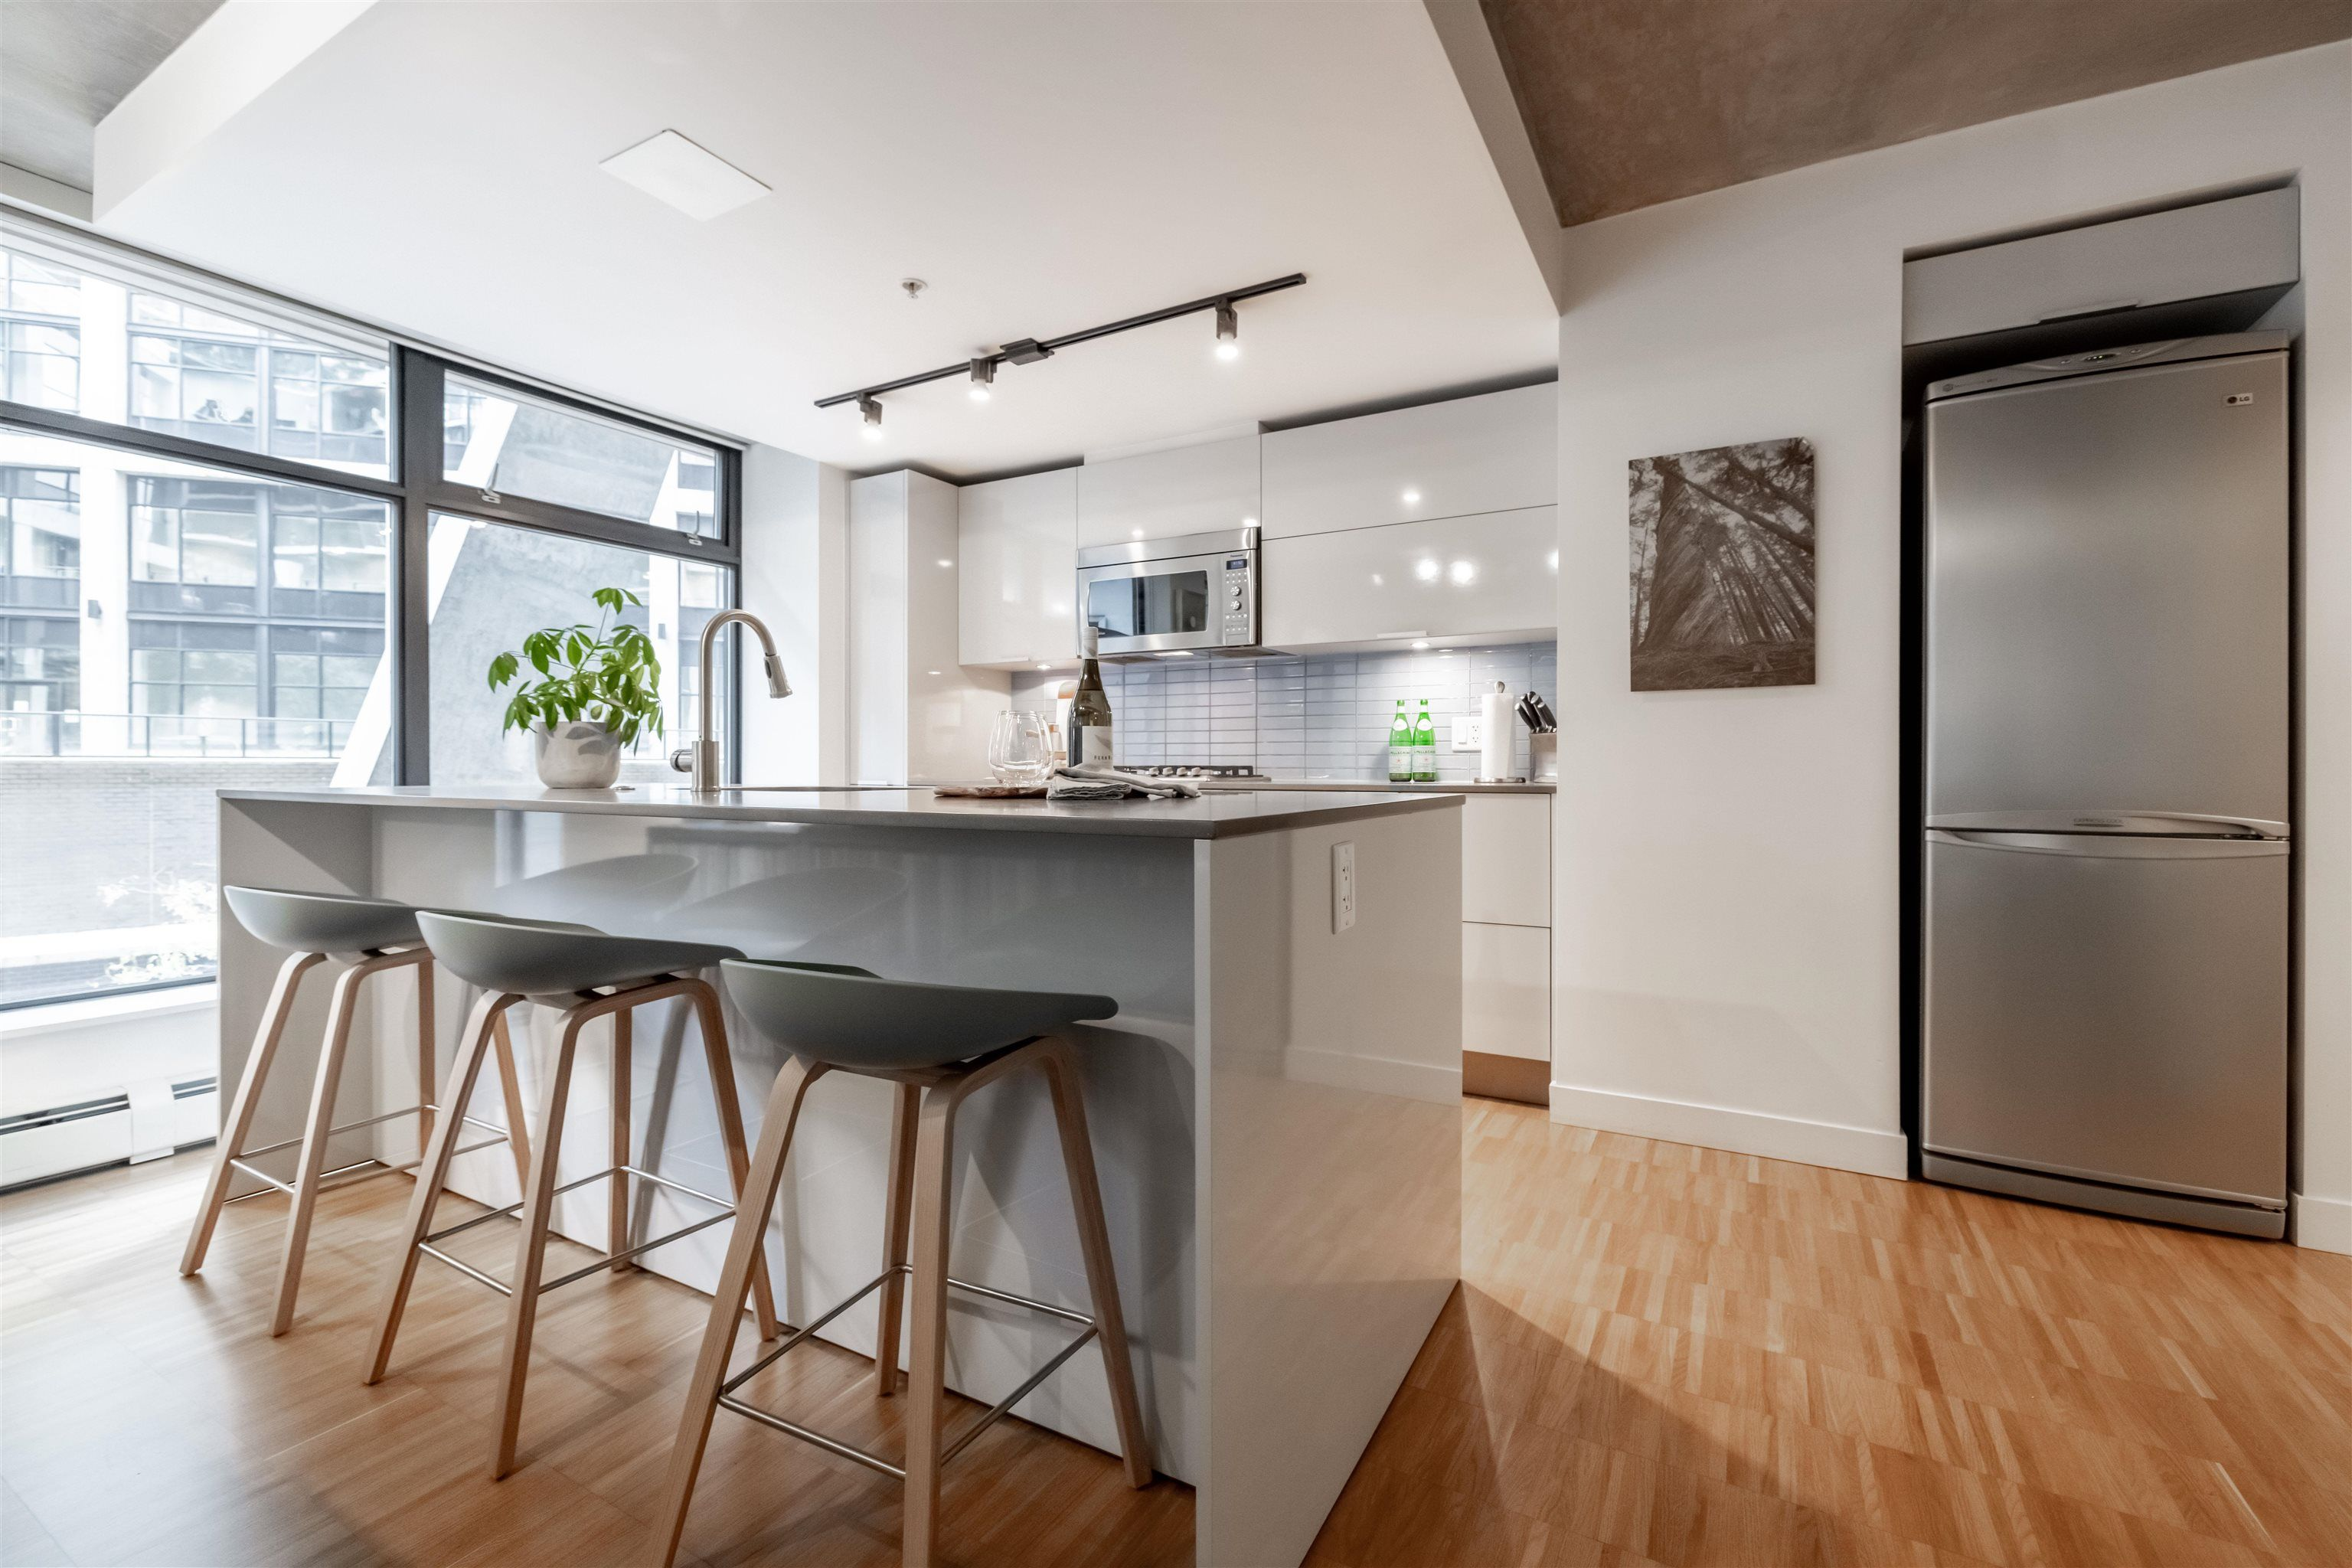 """Main Photo: 305 128 W CORDOVA Street in Vancouver: Downtown VW Condo for sale in """"WODWARDS"""" (Vancouver West)  : MLS®# R2624659"""